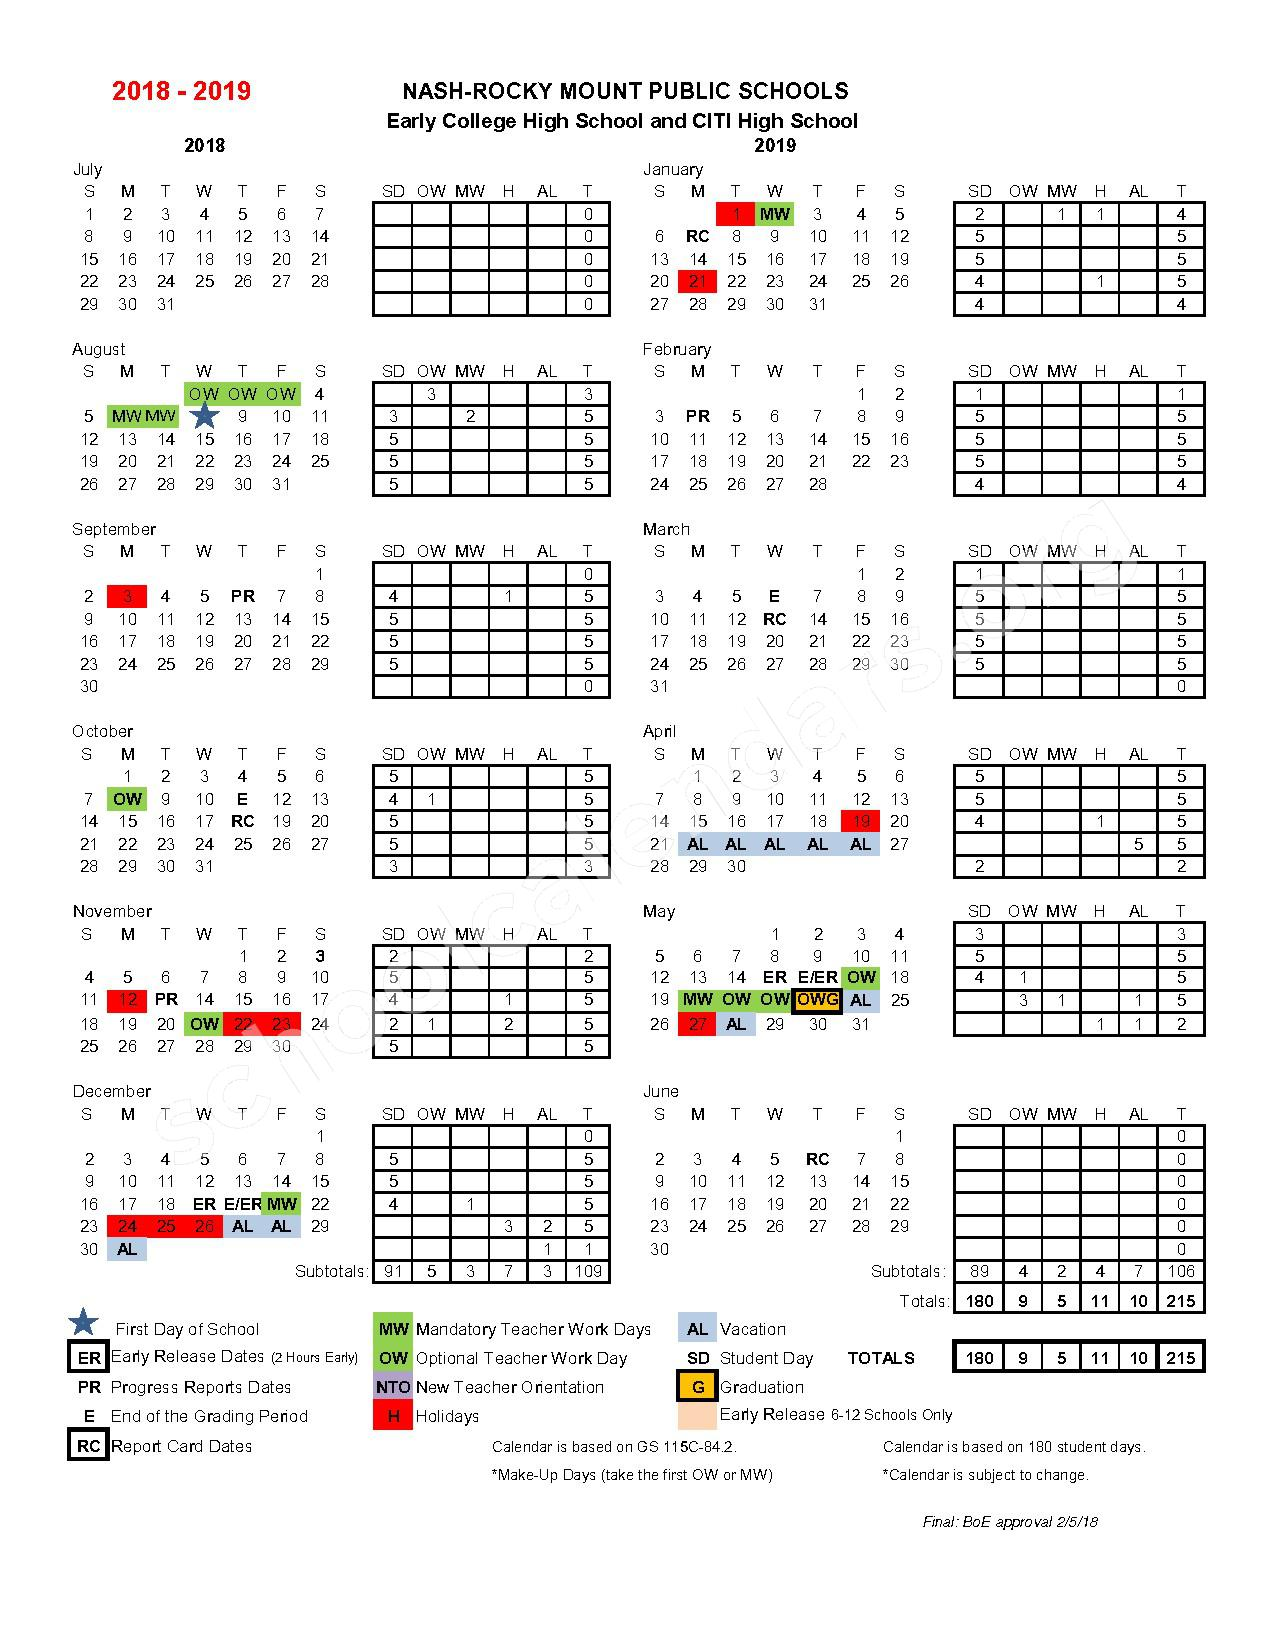 2018 - 2019 Early College and CITI High School Calendar – Nash-Rocky Mount Public Schools – page 1